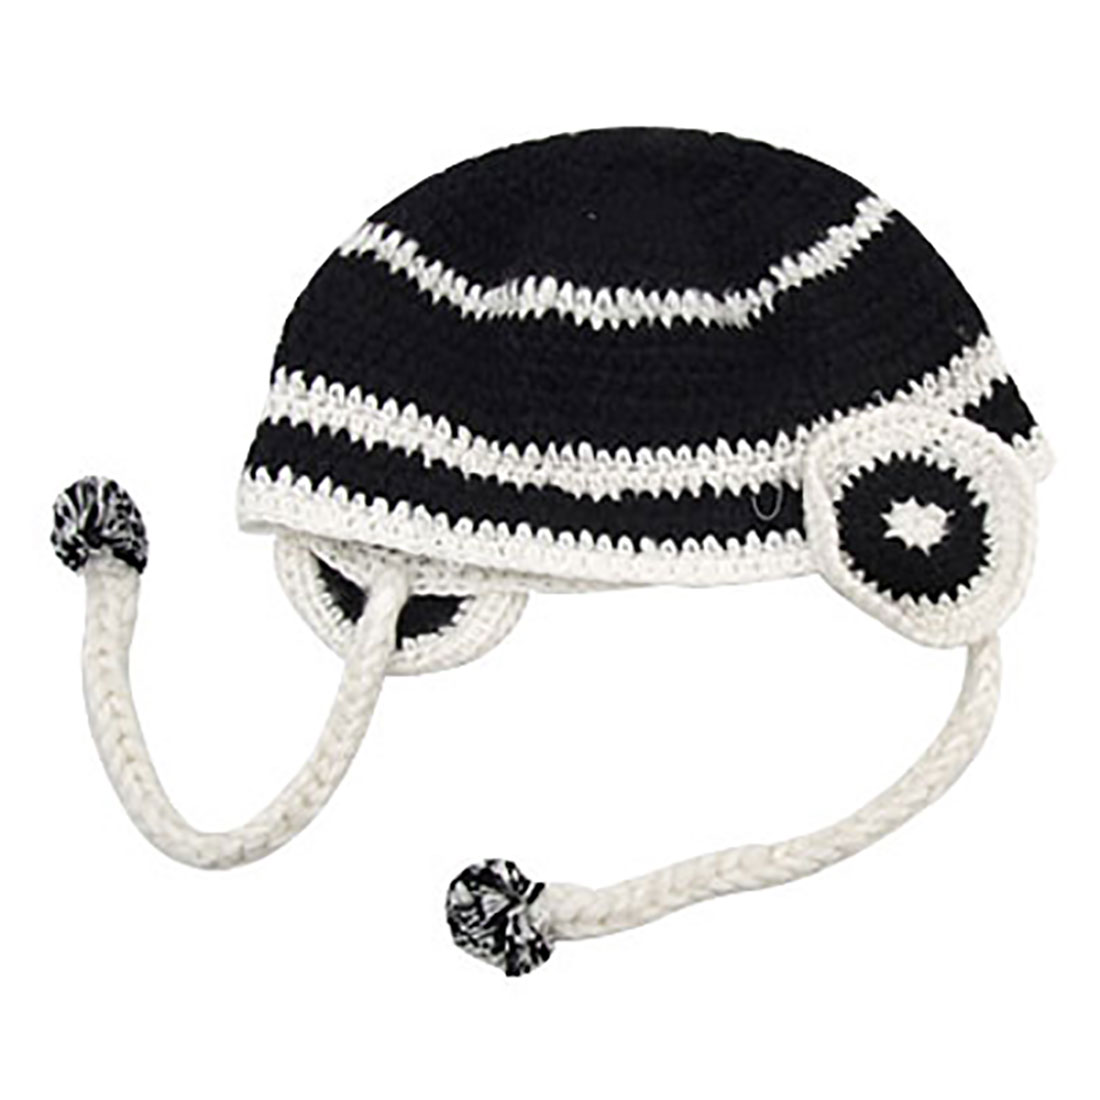 Lady Winter Knitted Hat Cap Beanie Ski Hat Black White